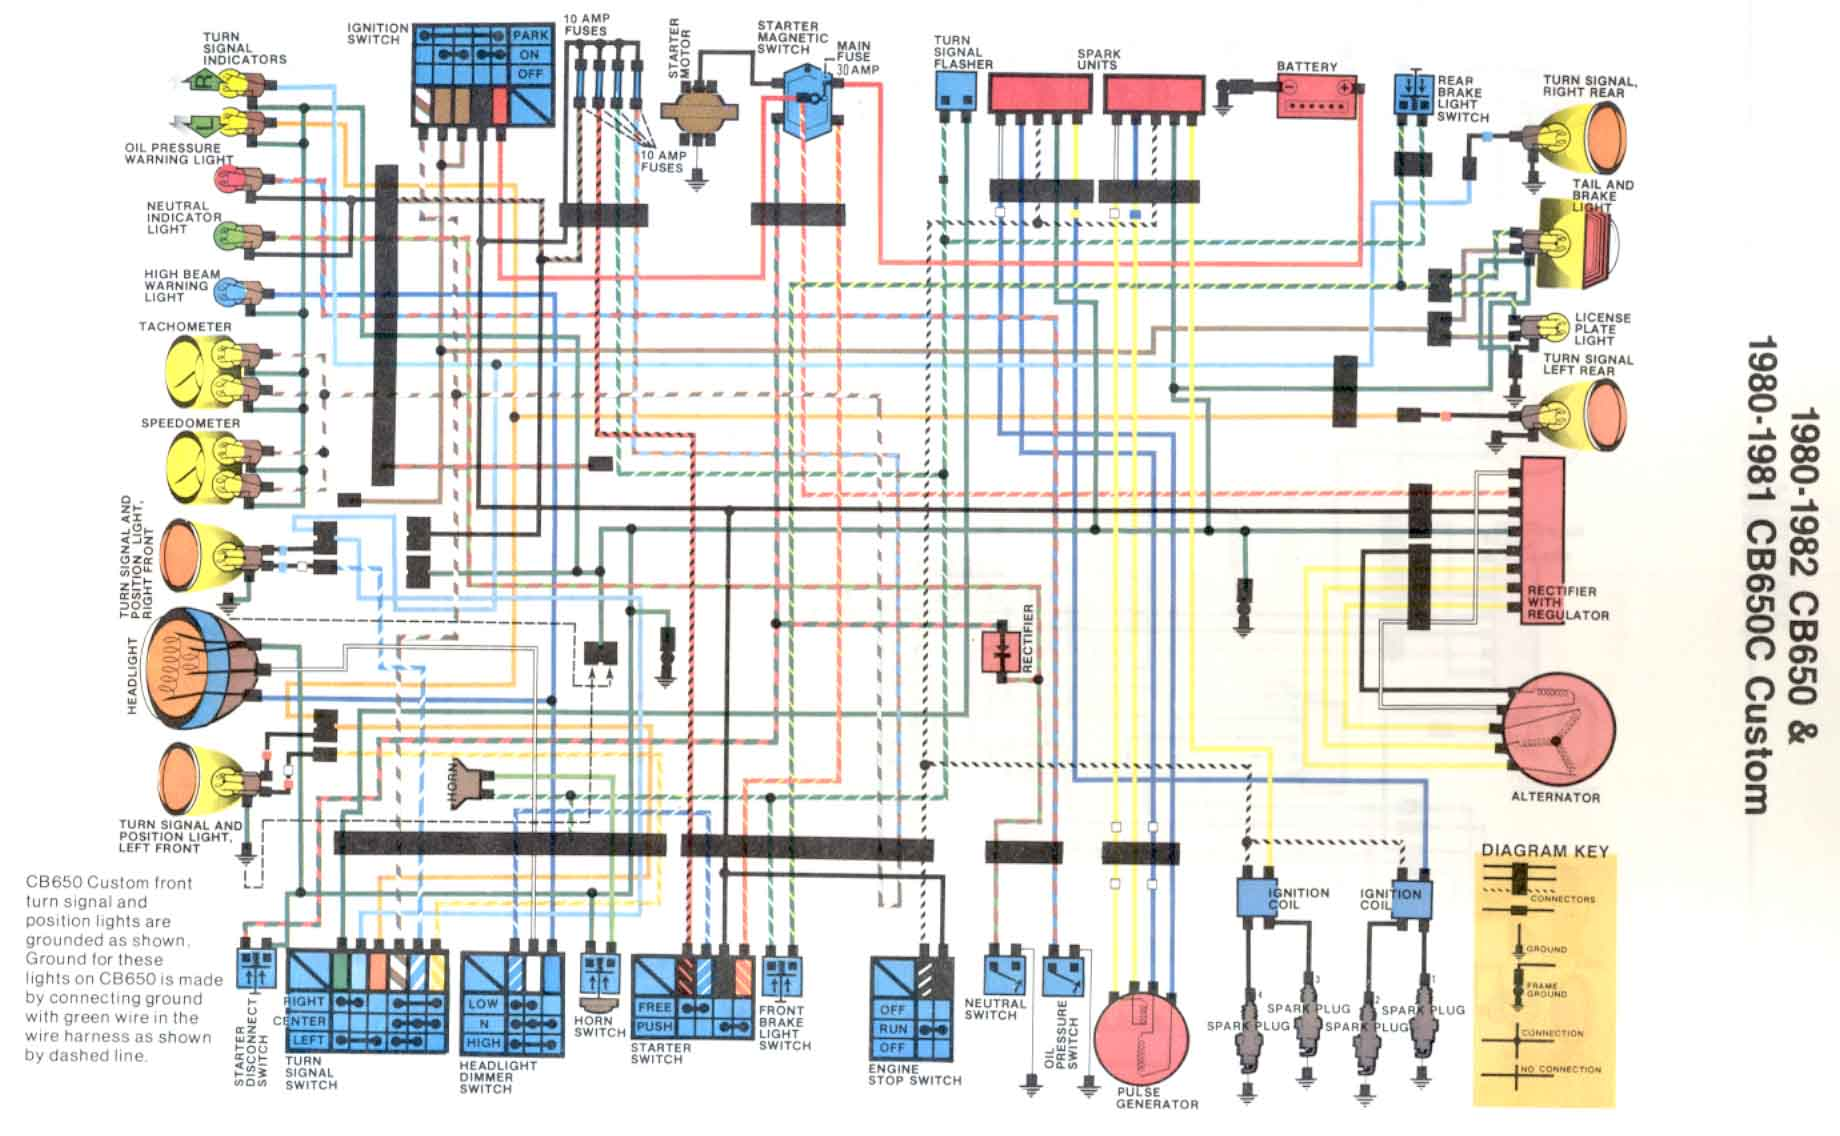 cm400 wiring diagram - fusebox and wiring diagram schematic-recipe -  schematic-recipe.id-architects.it  diagram database - id-architects.it